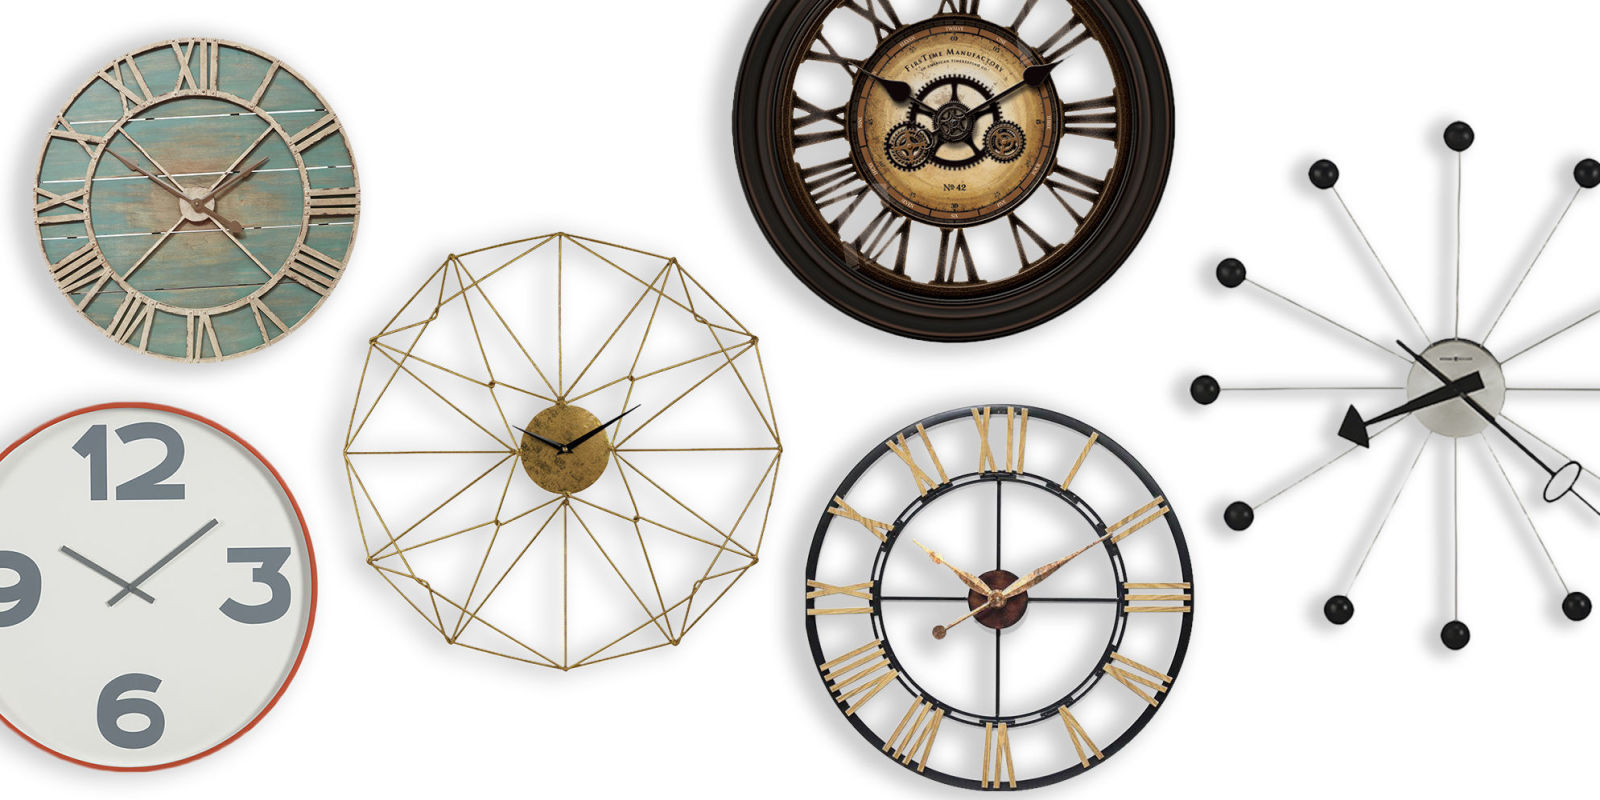 Best Decorative Oversized Wall Clocks 2017 11 Large Wall Clocks